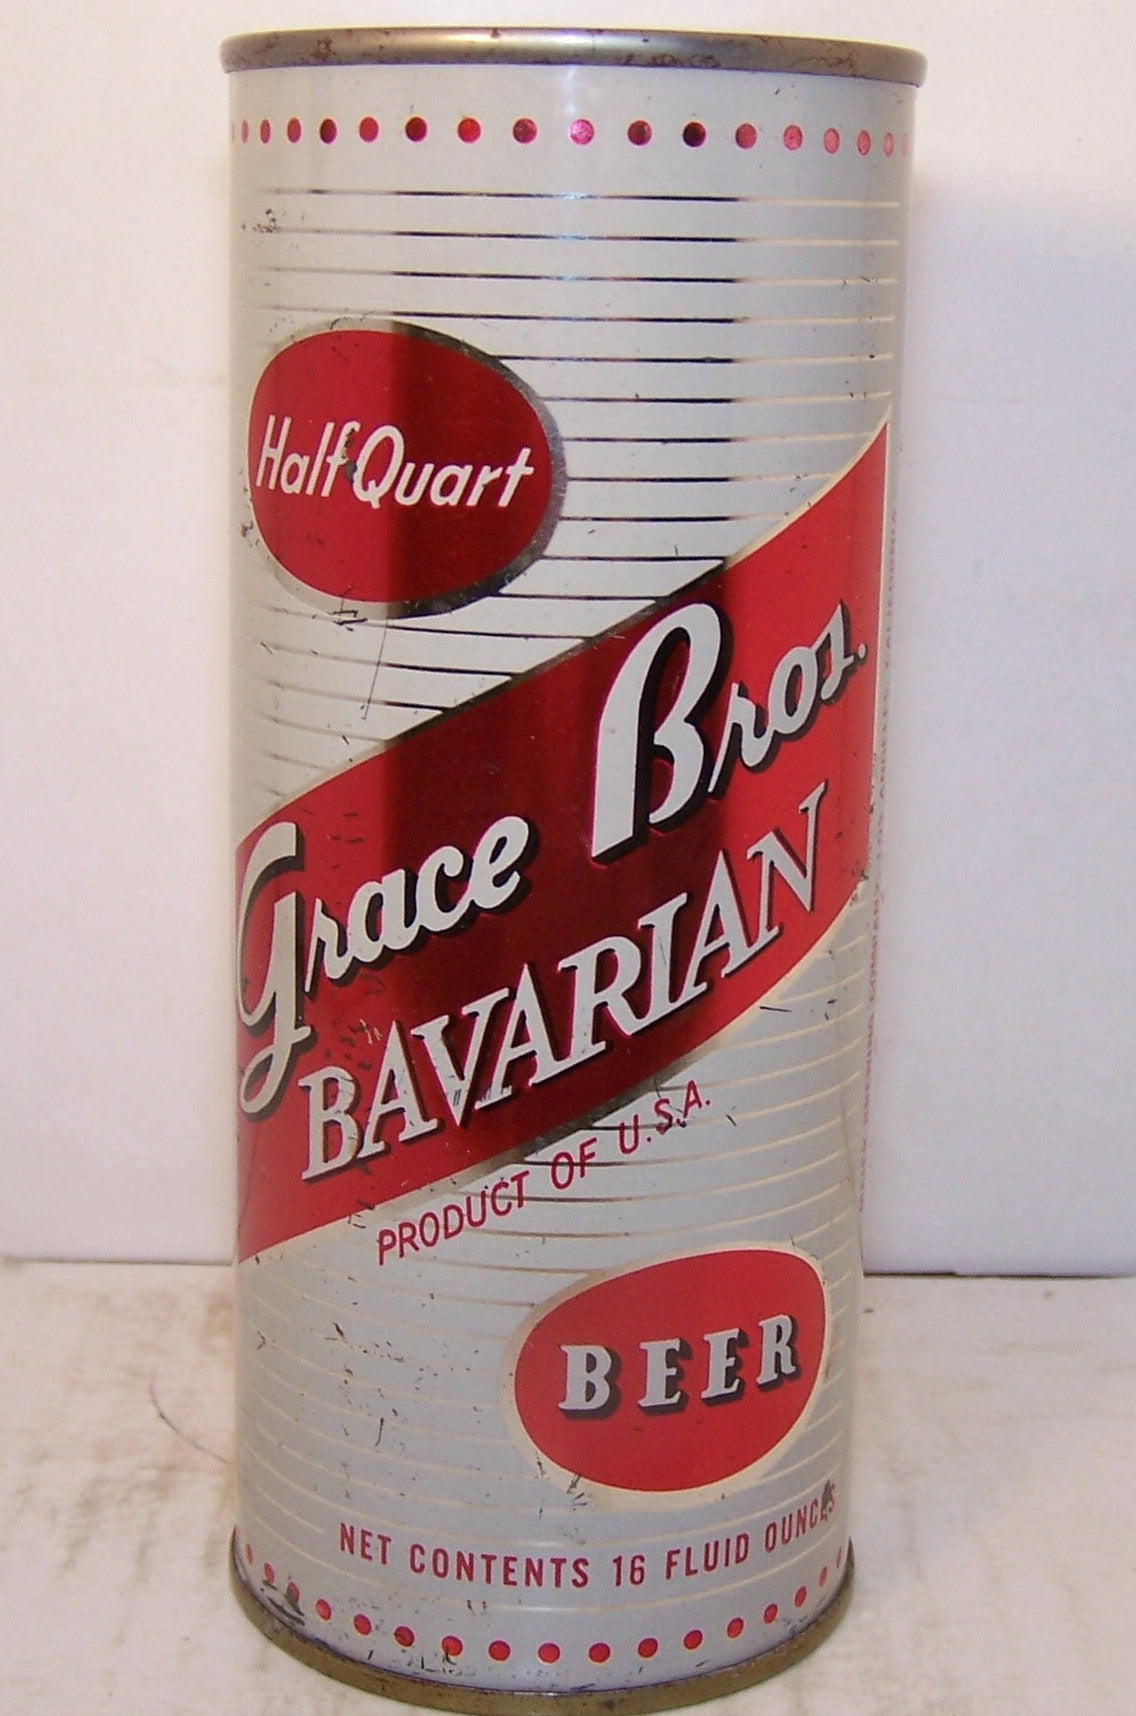 Grace Bros. Bavarian Beer, USBC 230-3, Grade 1/1- Sold on 2/9/15